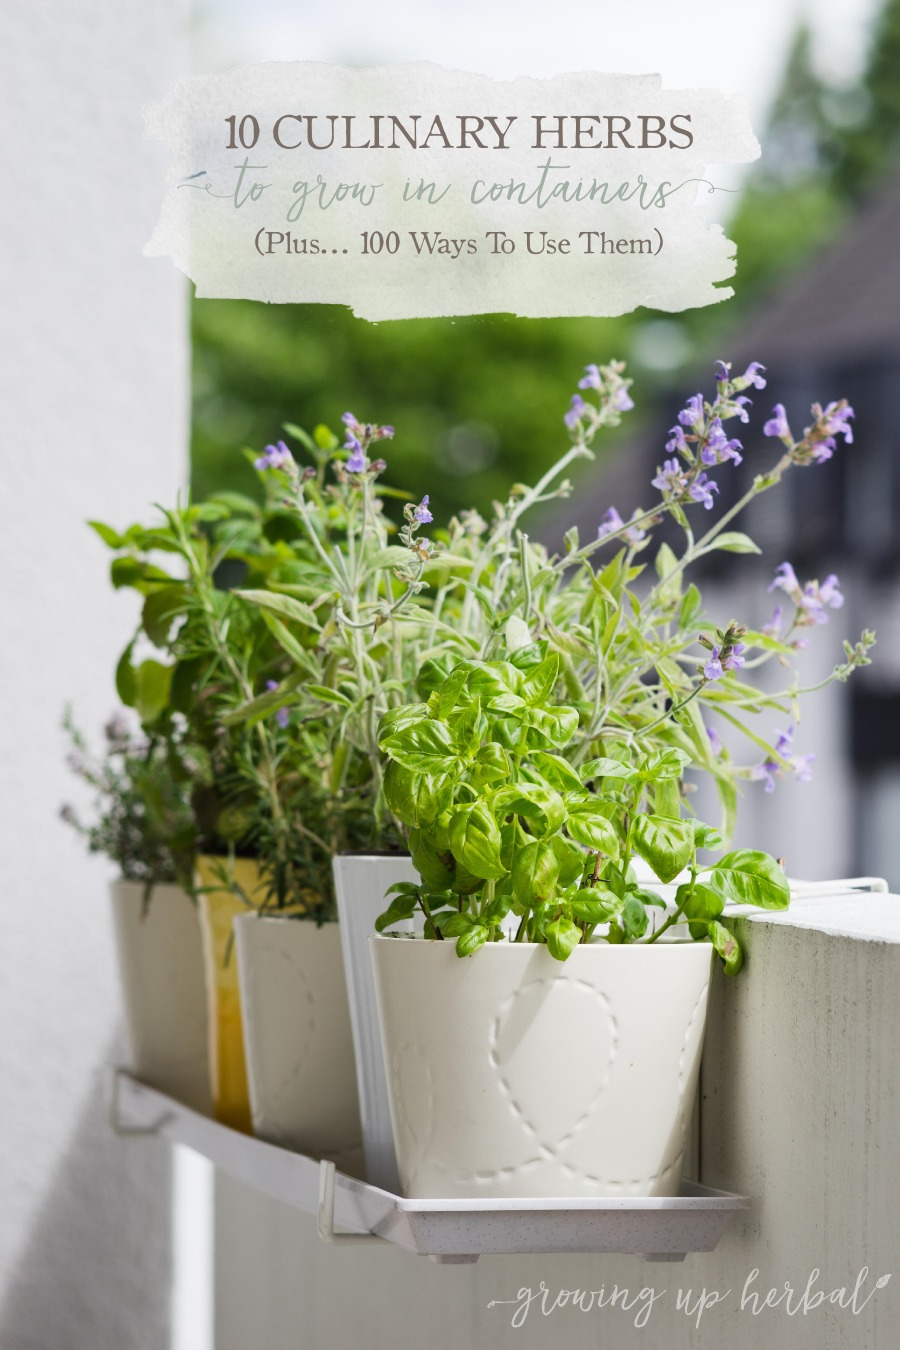 10 Culinary Herbs To Grow in Containers (Plus 100 Ways to Use Them)